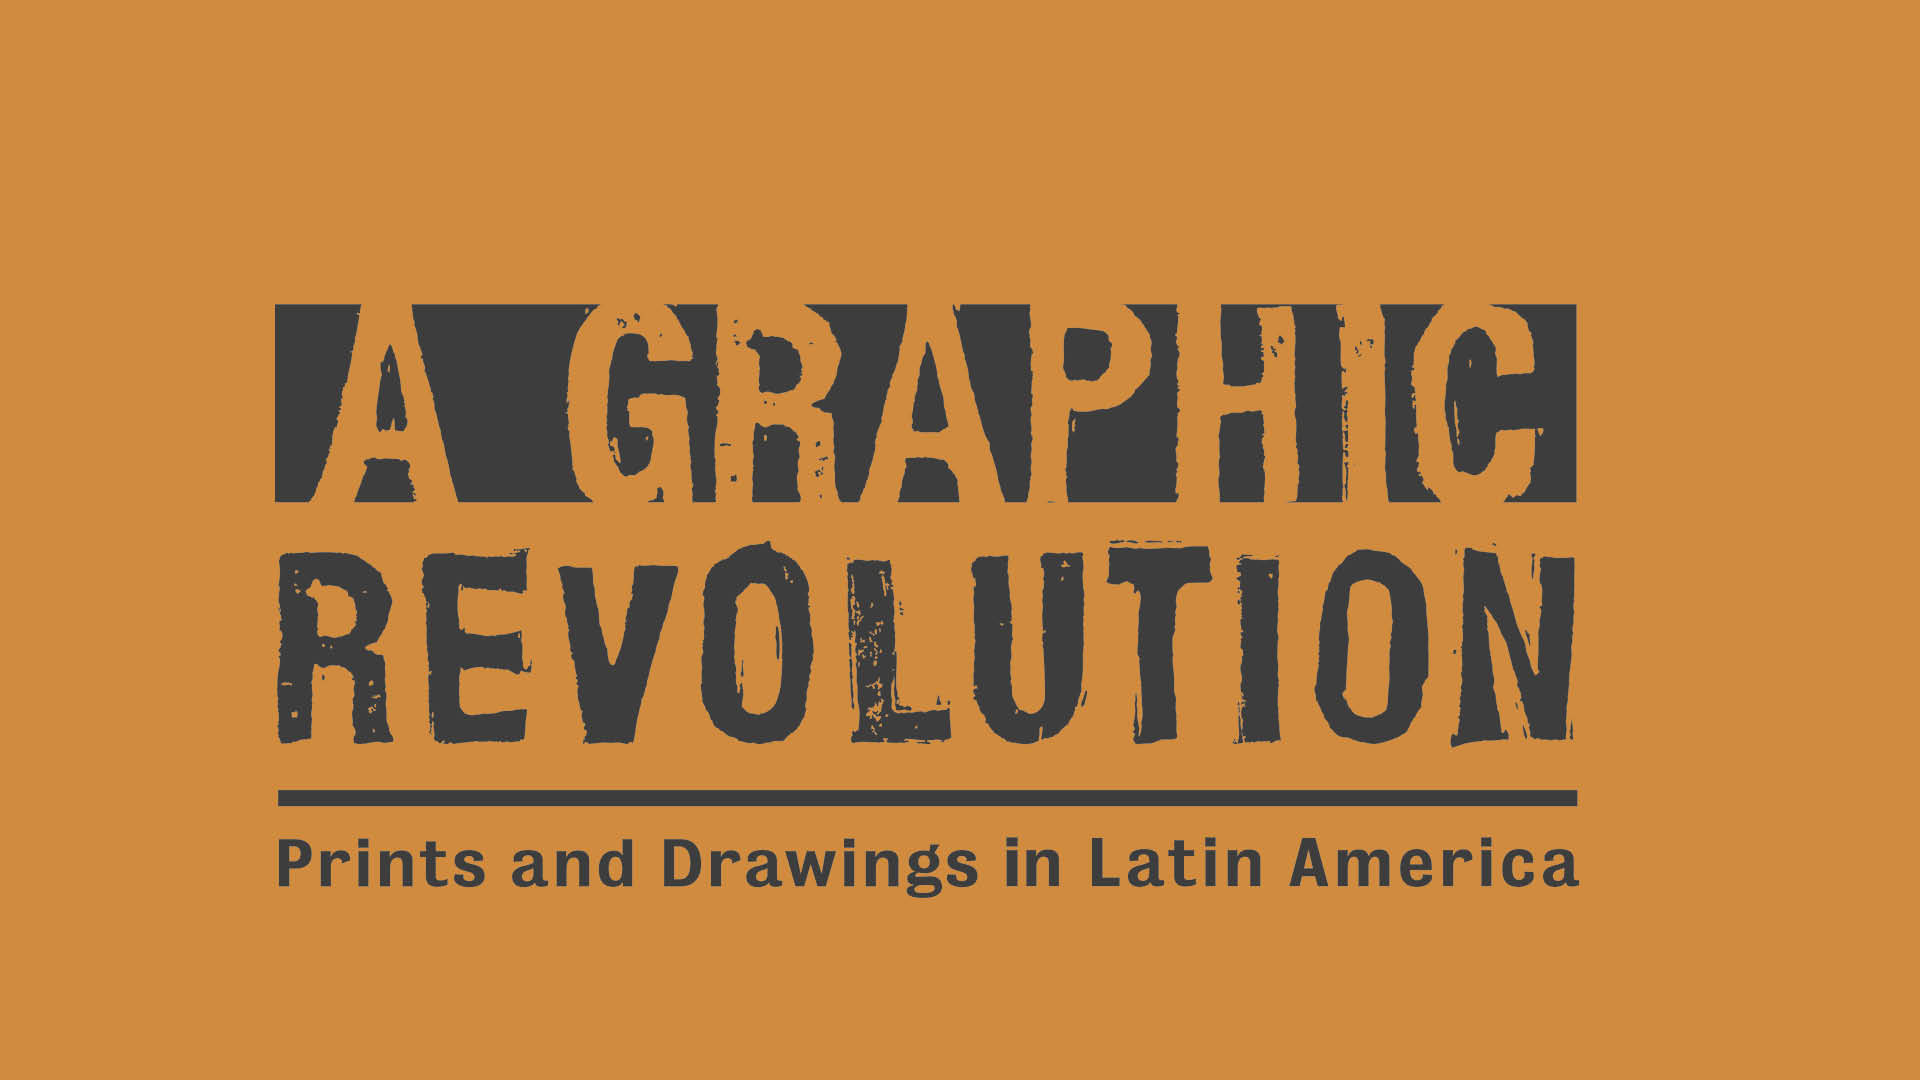 A Graphic Revolution